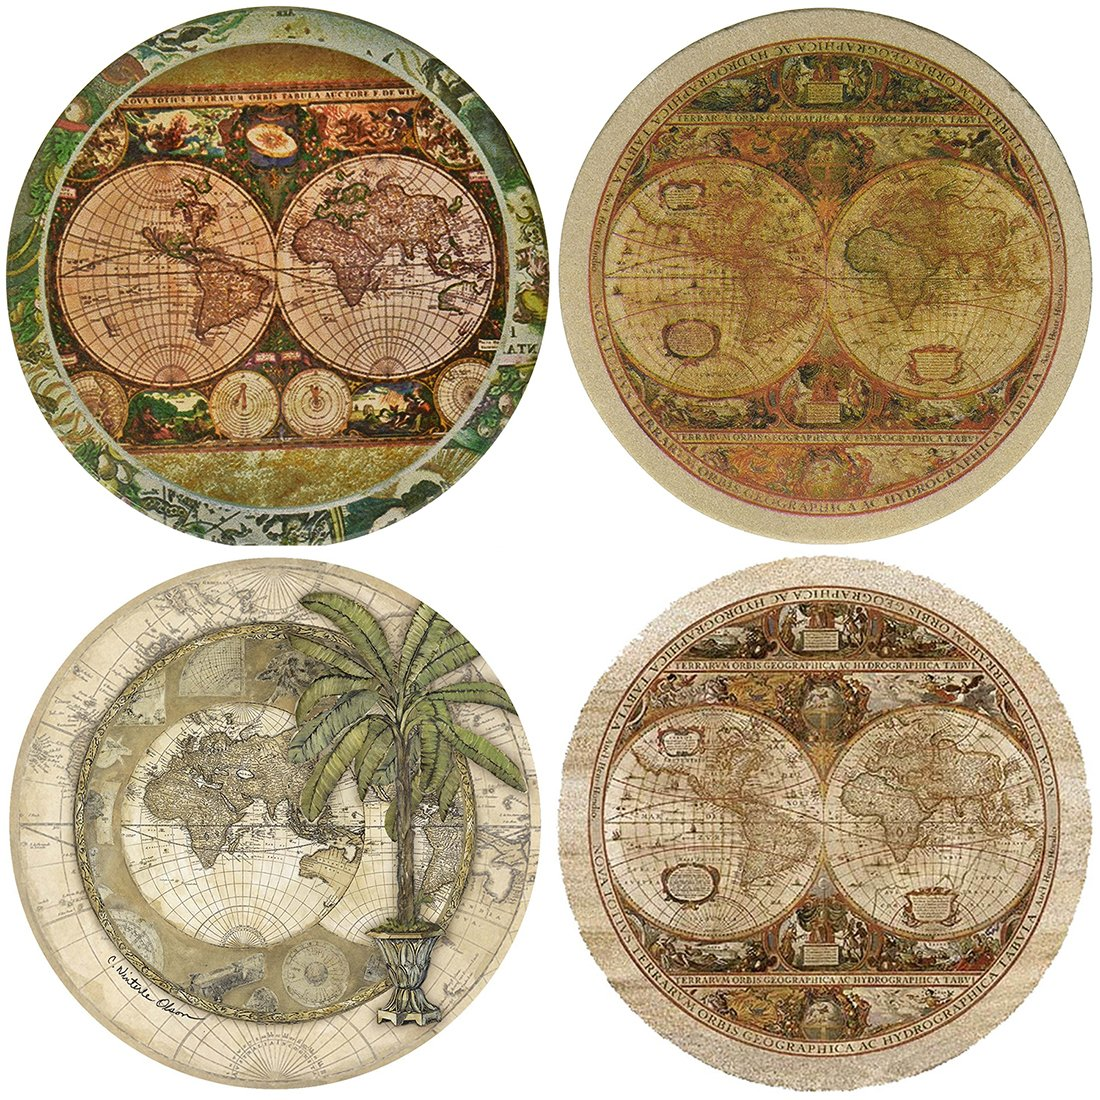 QIMOUSE Coasters Non Slip, Ceramic Old World Map Design Coasters Set of 4